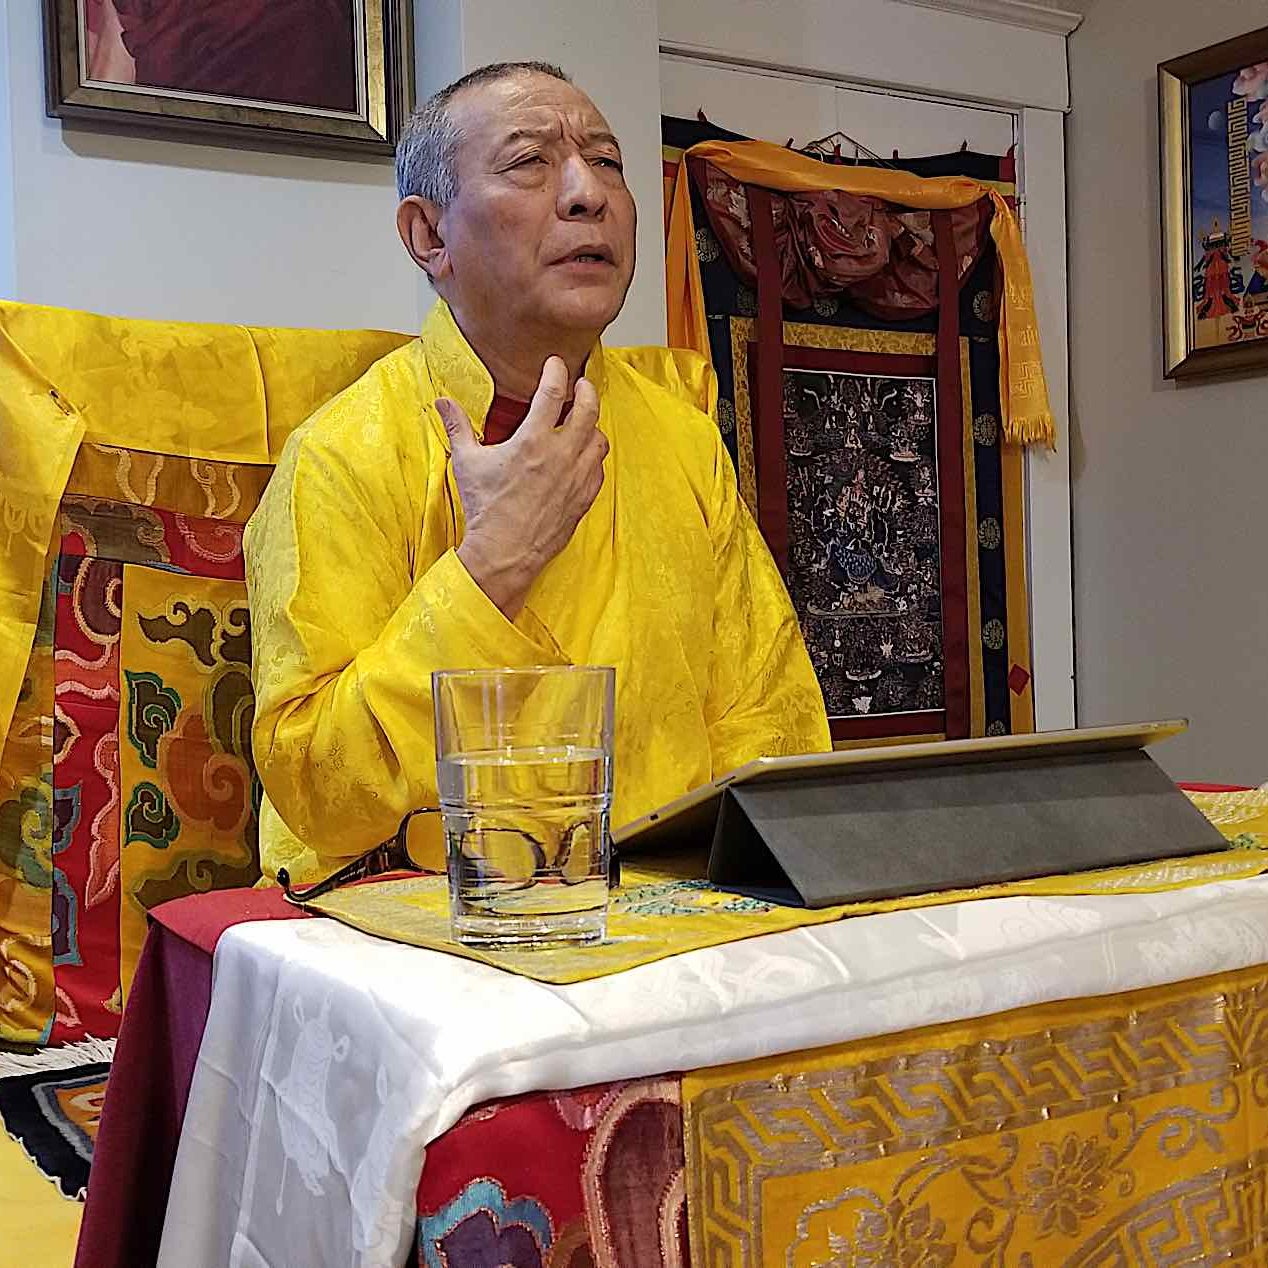 Today, many Sadhanas are available digitally. Here, H.E. Zasep Rinpoche teaches from a Tibetan script Sadhana on an Ipad. Today, with teacher's travelling around the world, digital versions are indespensible.